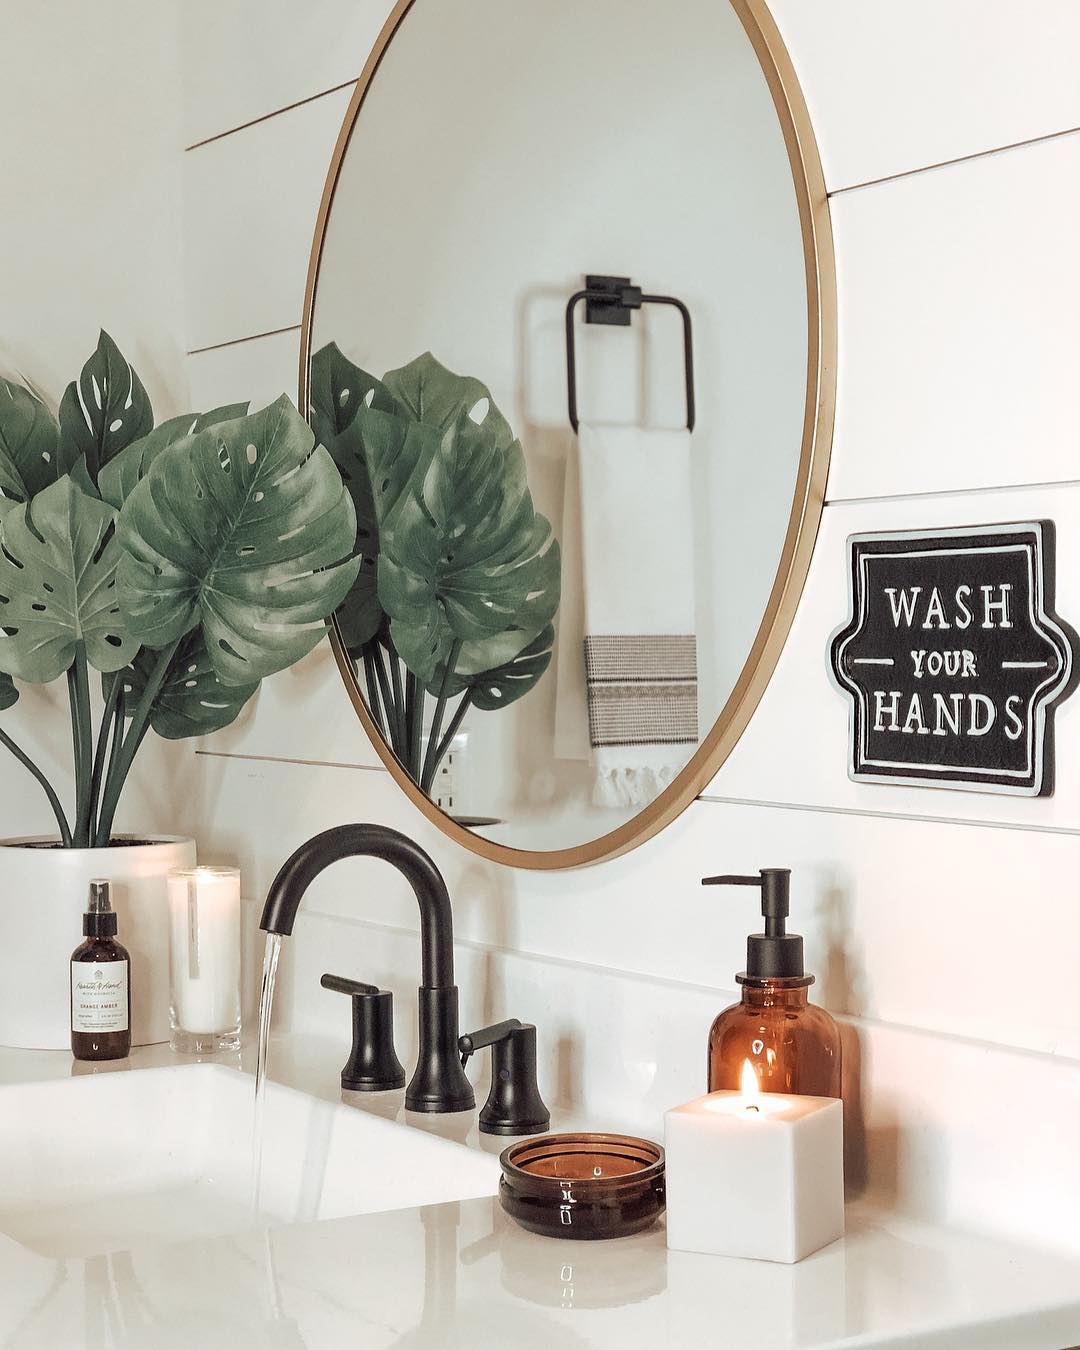 Bathroom Furniture Accessories We Re Loving Right Now In 2020